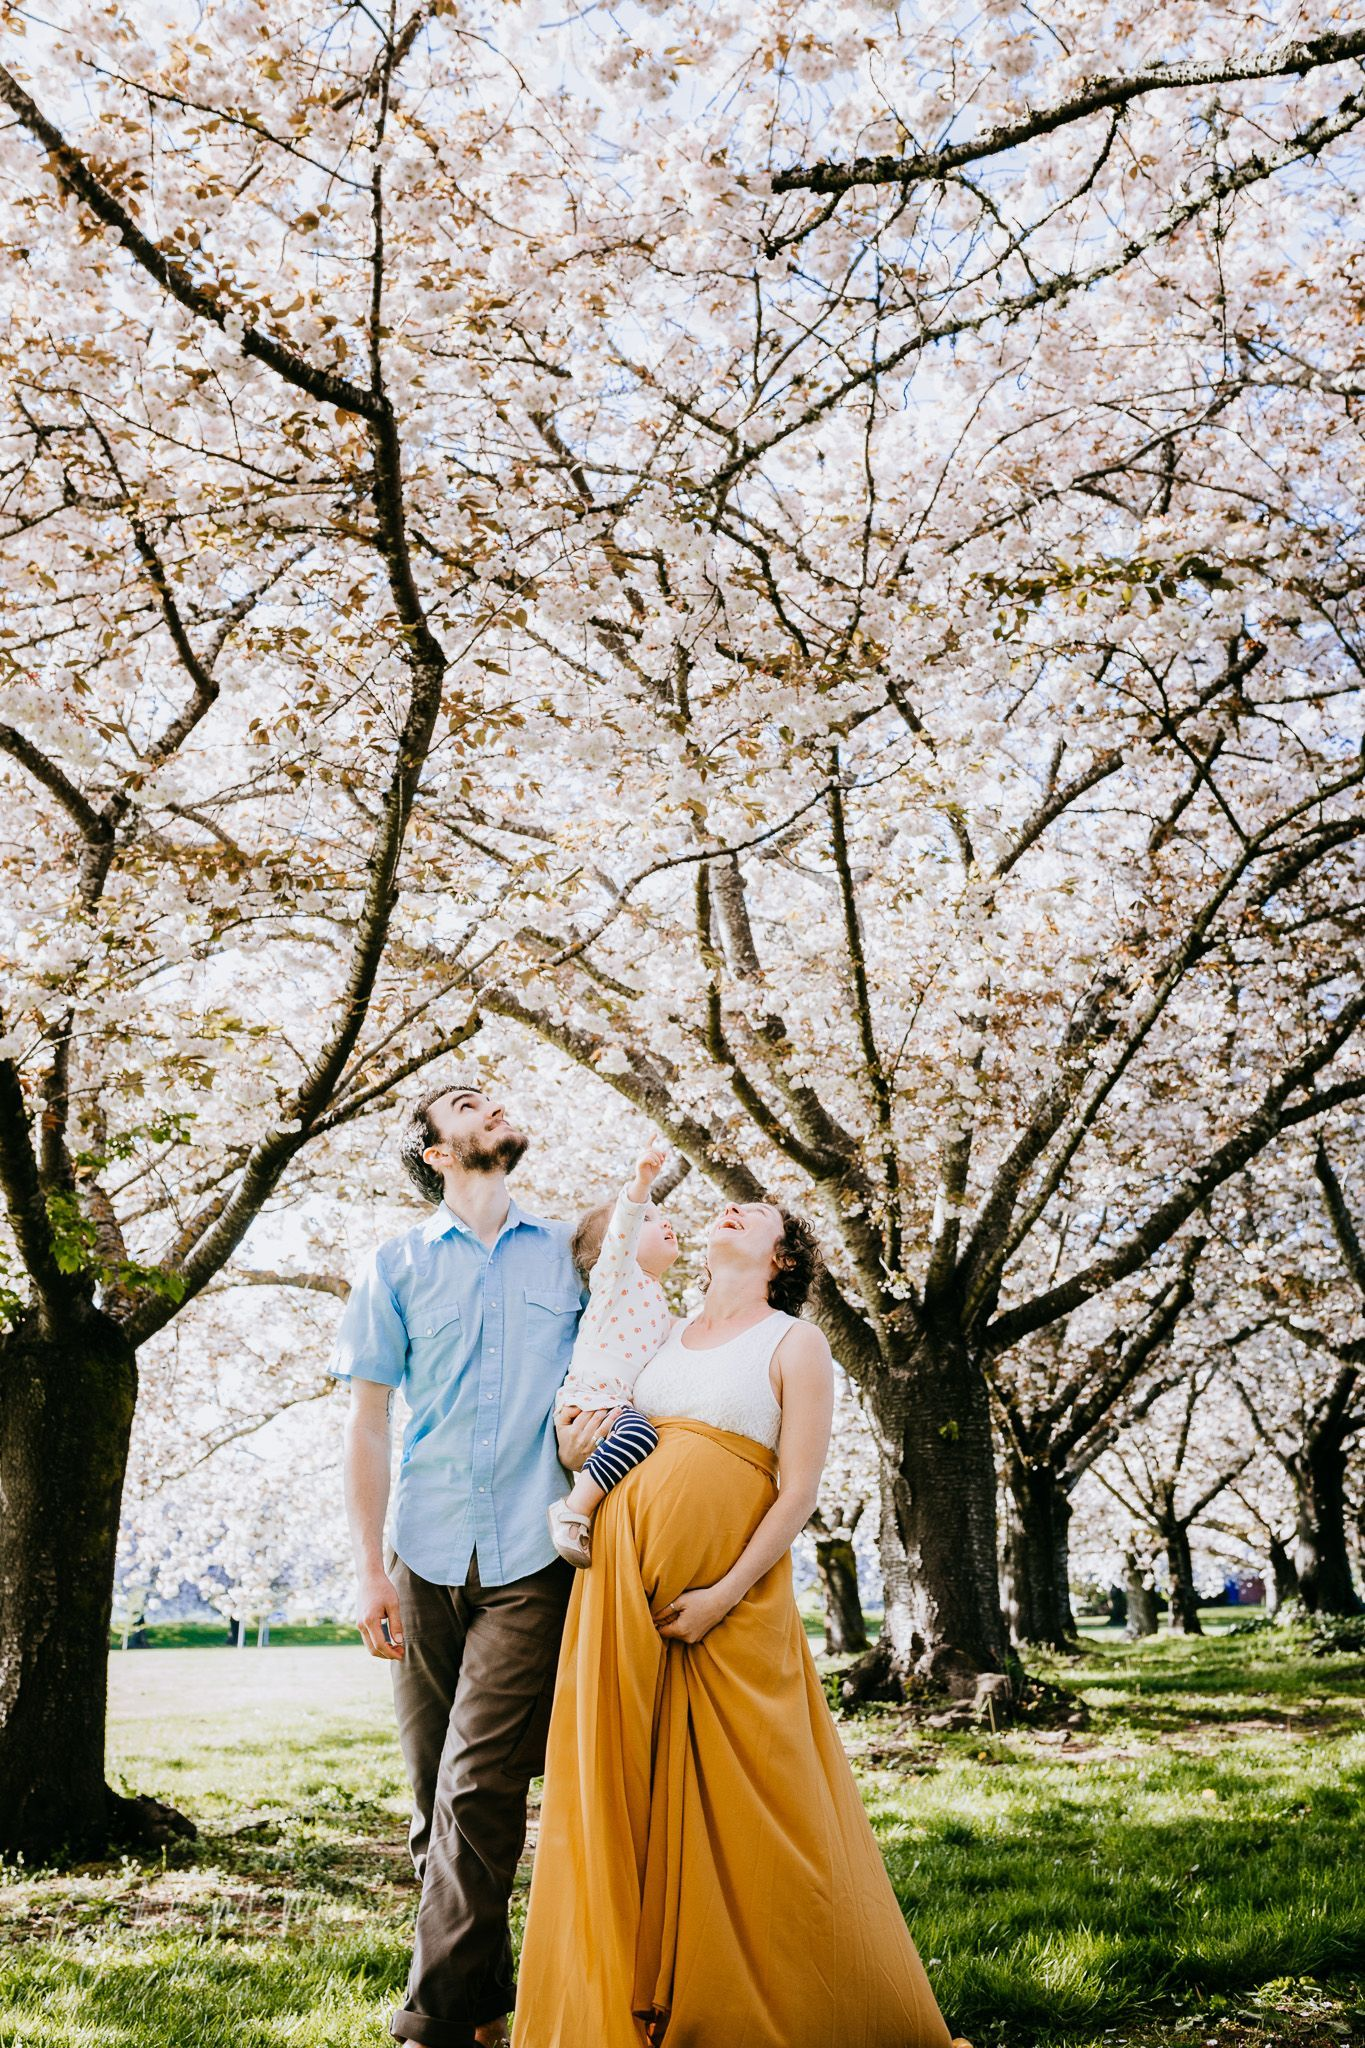 Spring Cherry Blossom Family And Maternity Portraits With Long Yellow Skirt In Orchard Crystal Digital Photography Backdrops Photography Beautiful Photography